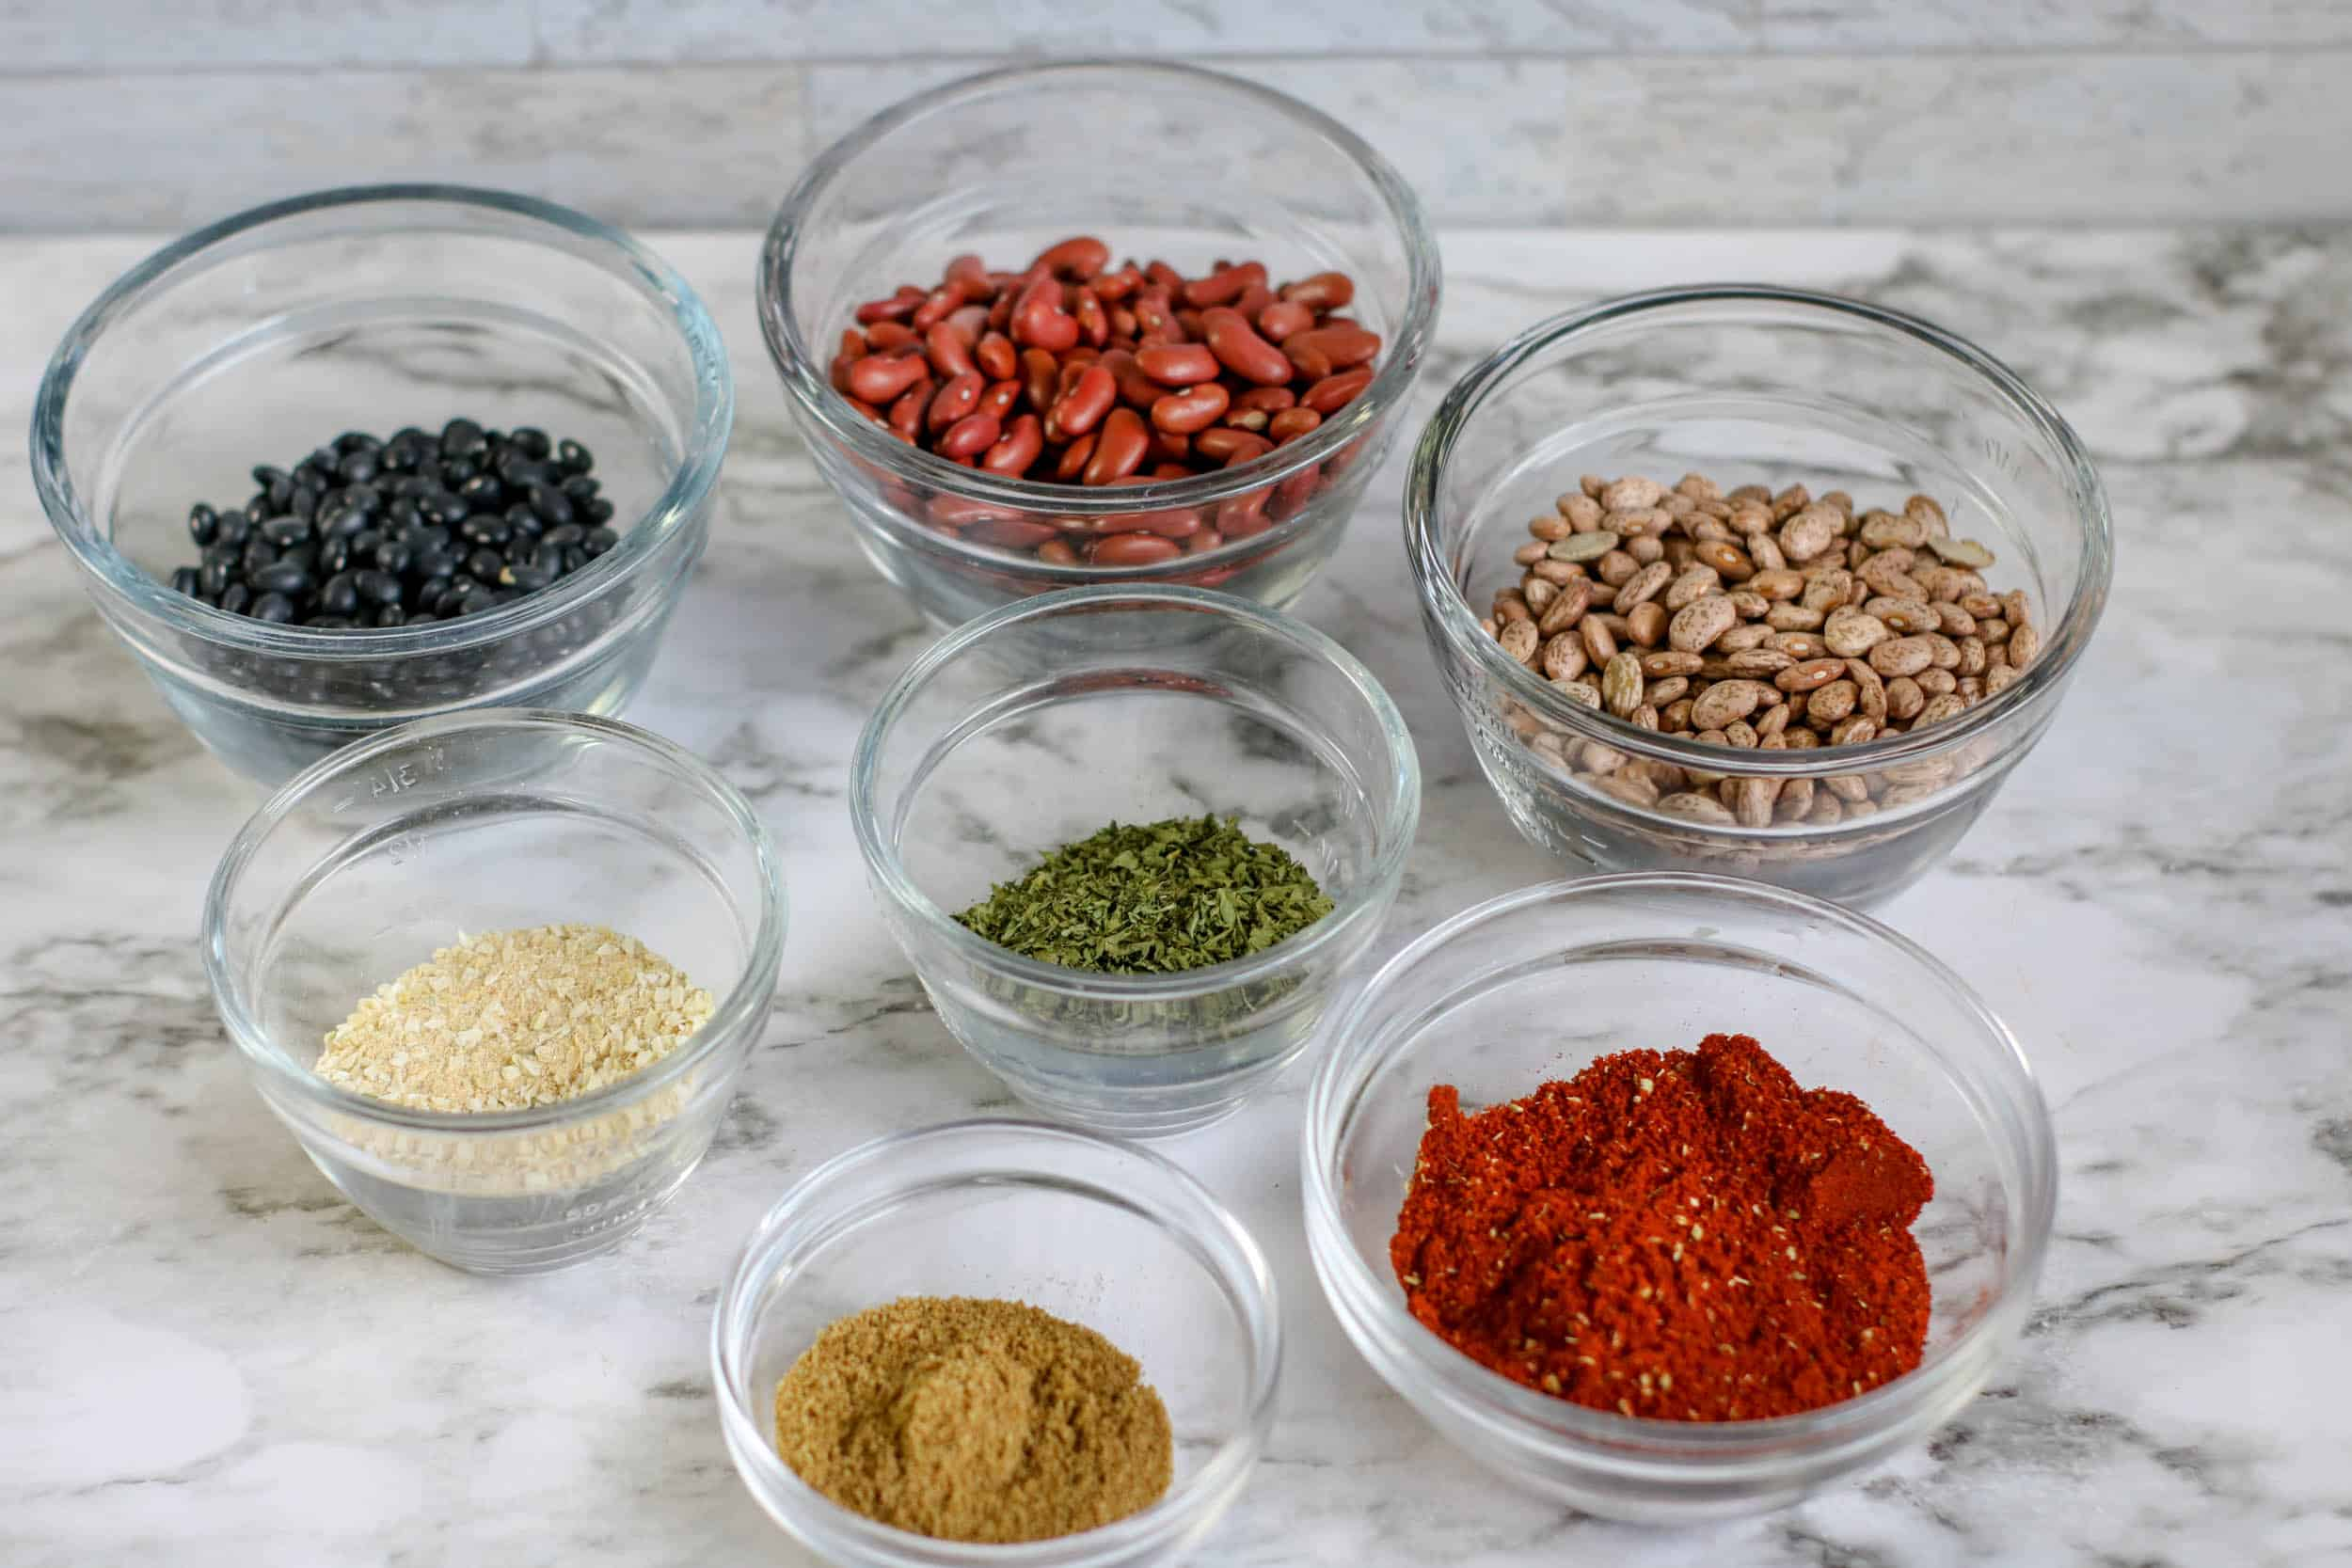 Three Bean Chili Mix Ingredients